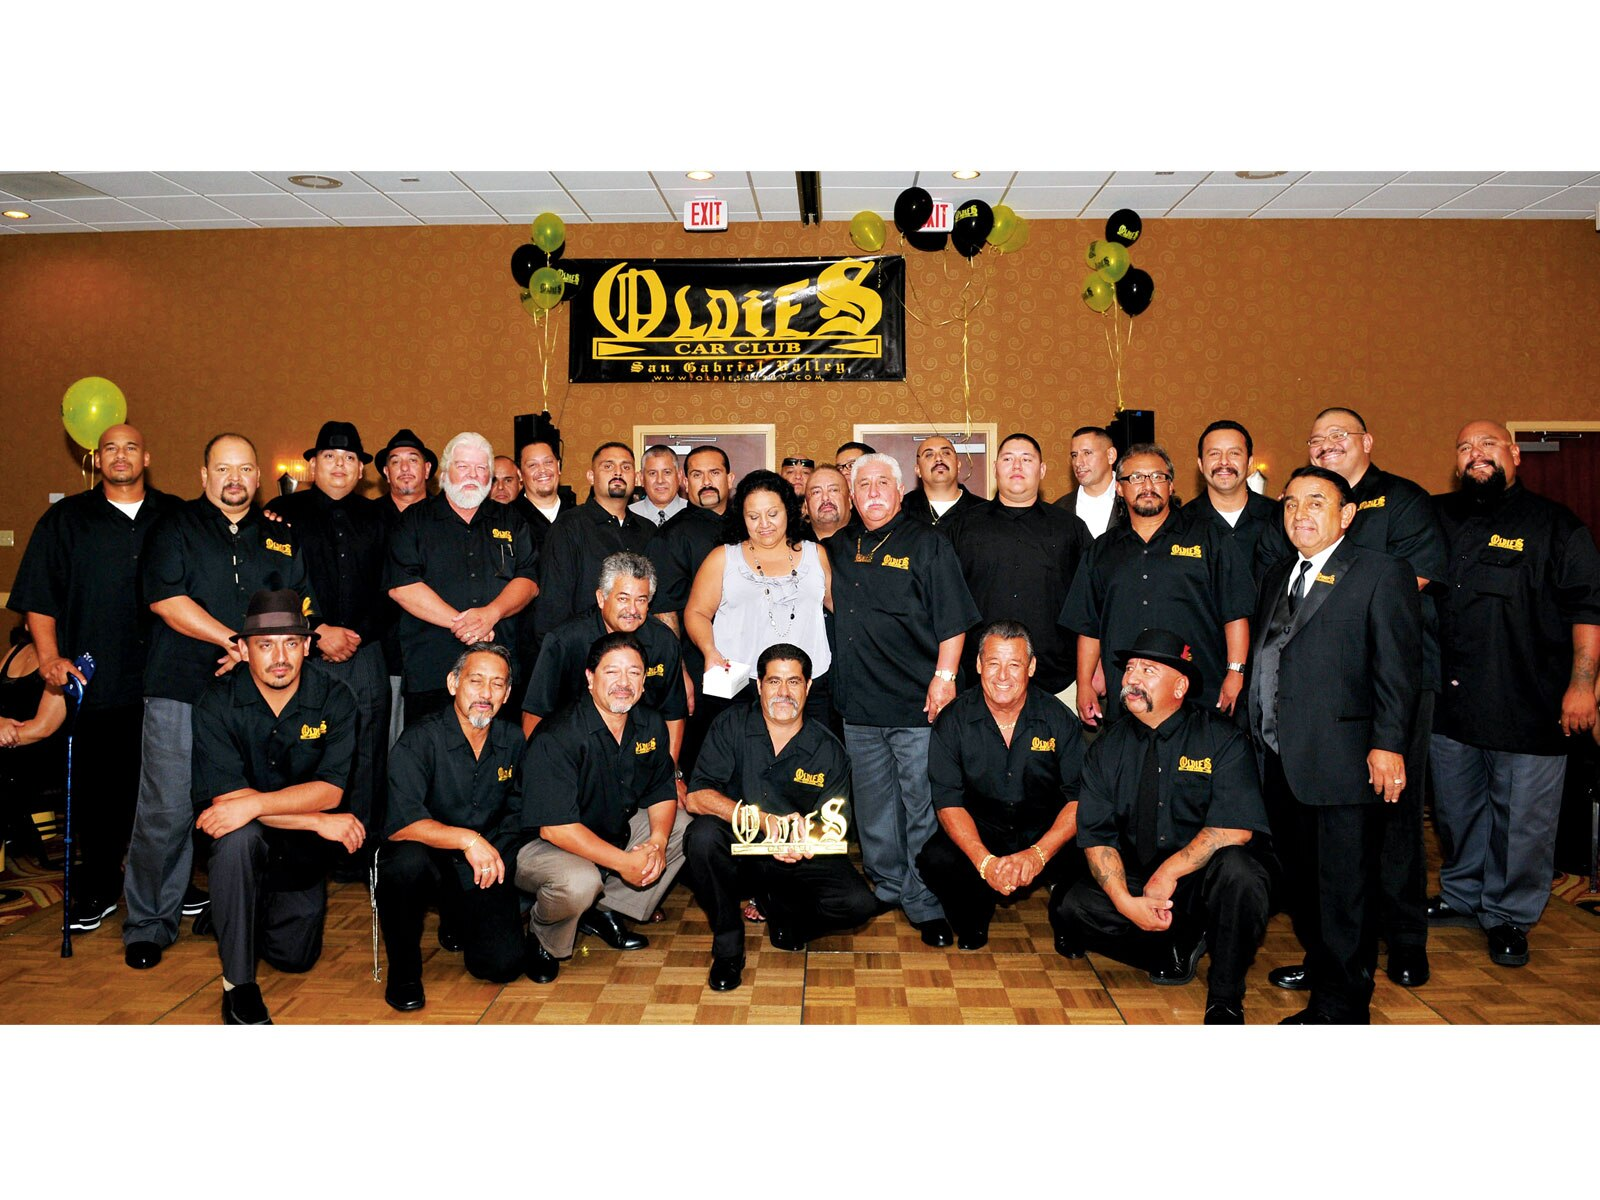 1003_lrmp_01_o-oldies_car_club_san_gabriel_valley_chapter-group_picture2